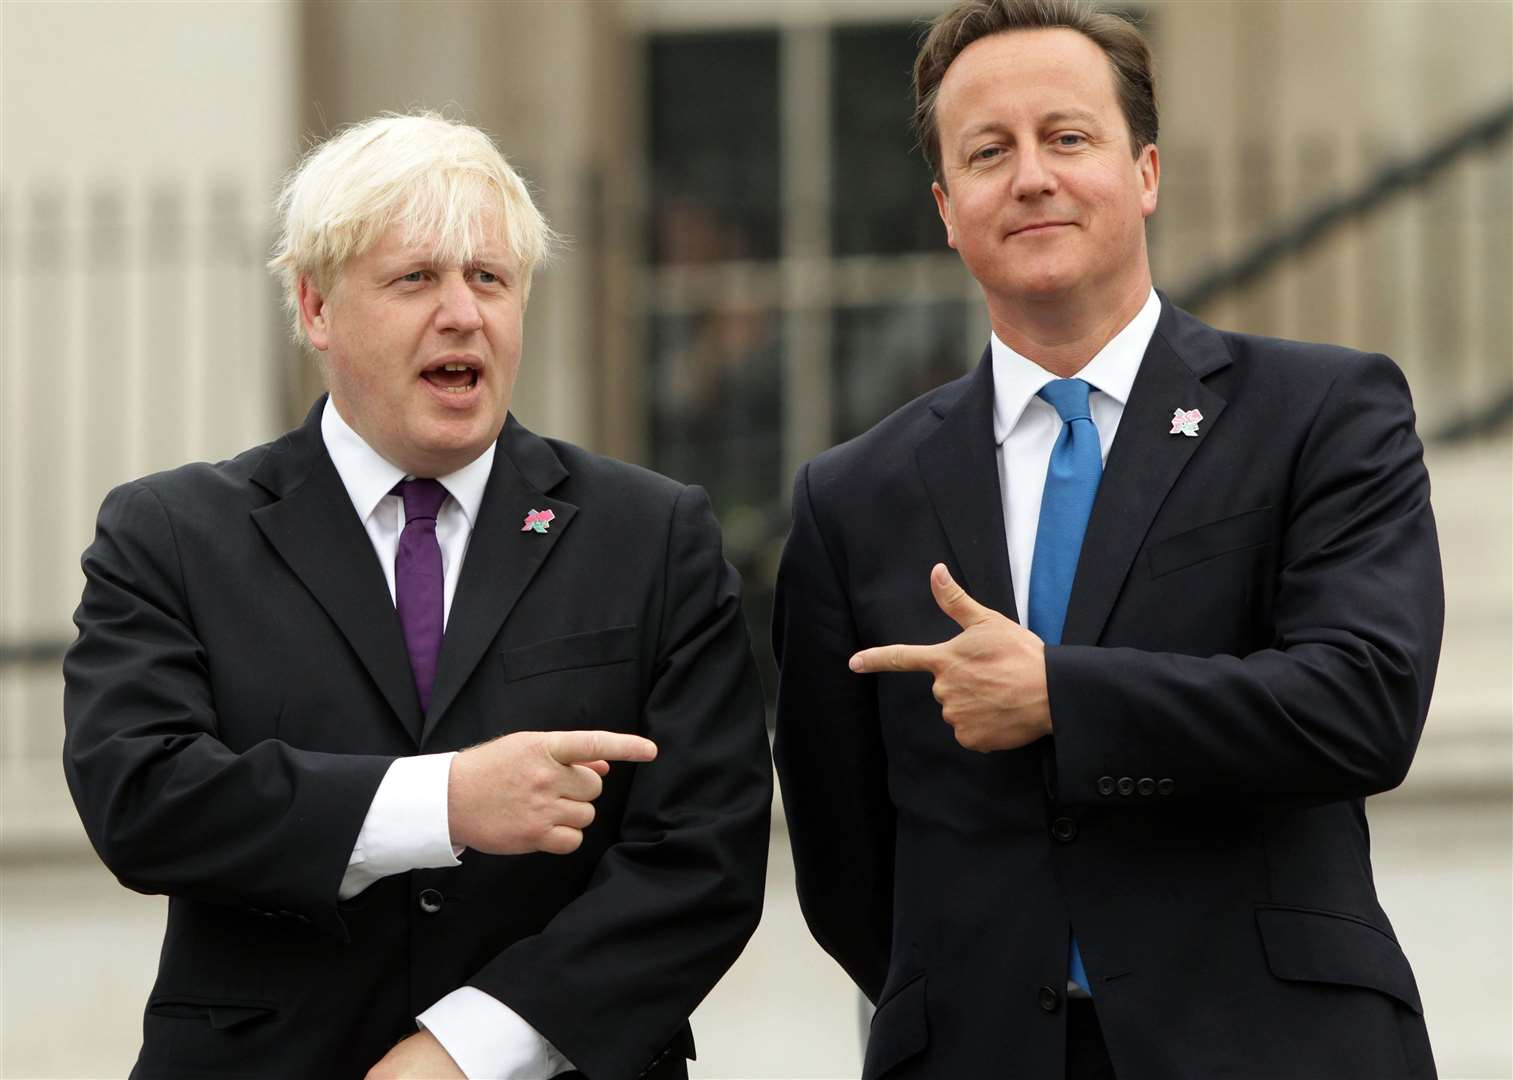 David Cameron, right, seen here with the front runner for next prime minister, Boris Johnson, made rudeness one of his main contributions to British political discourse Picture: Yui Mok/PA Wire